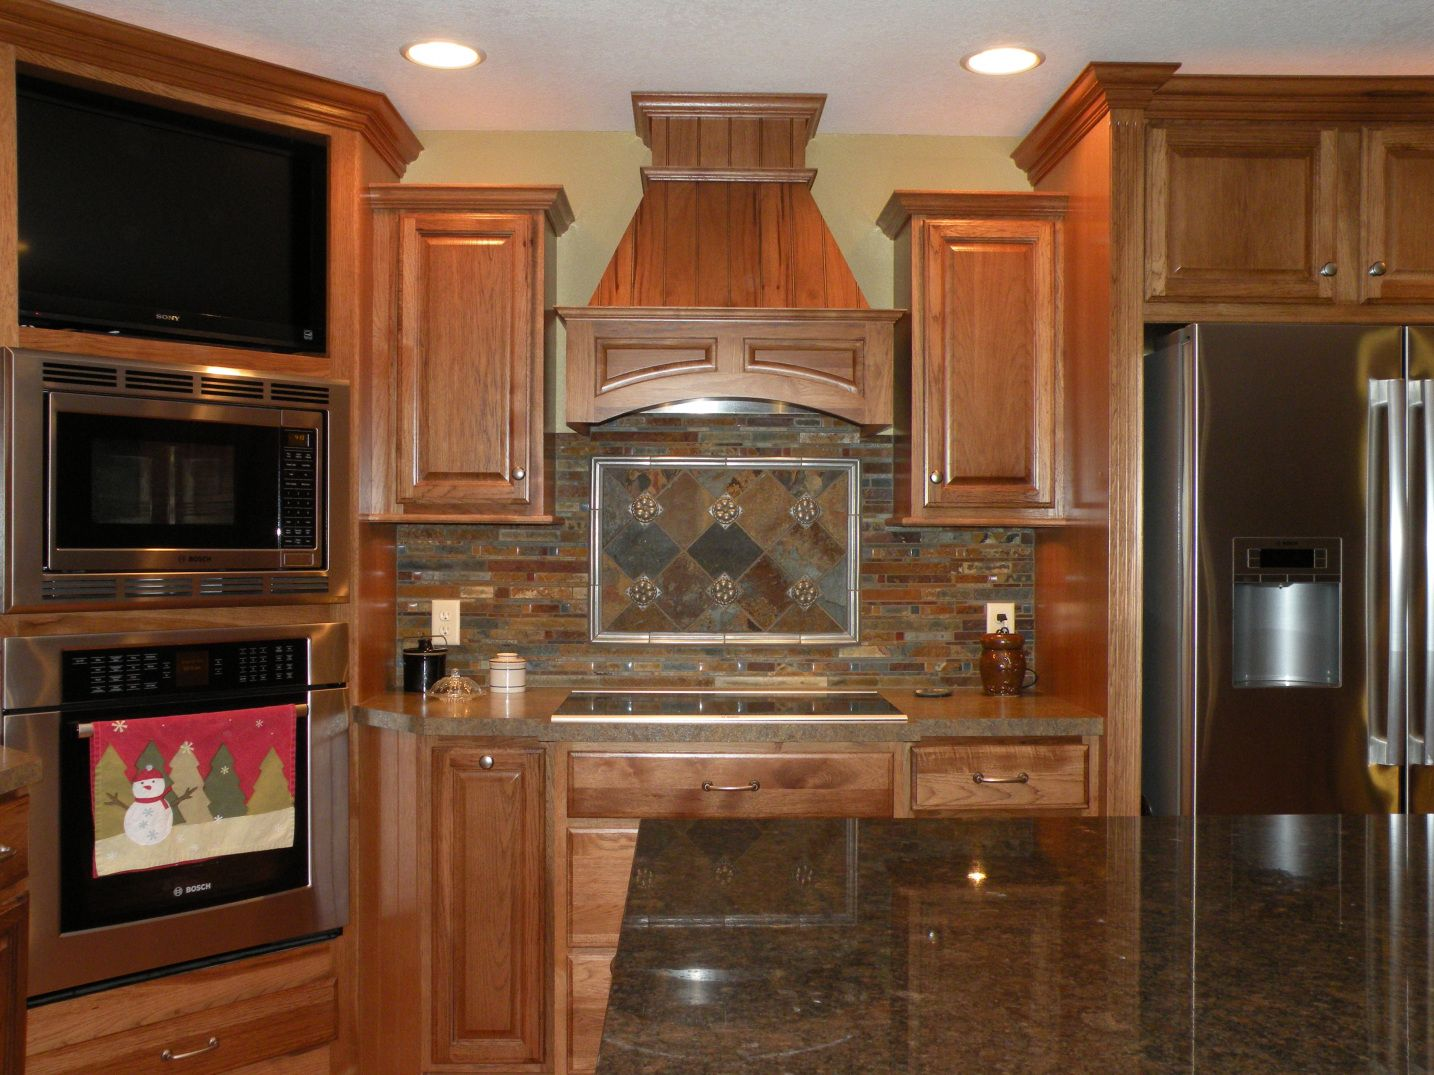 55 Lowes Kitchen Maid Cabinets Rustic